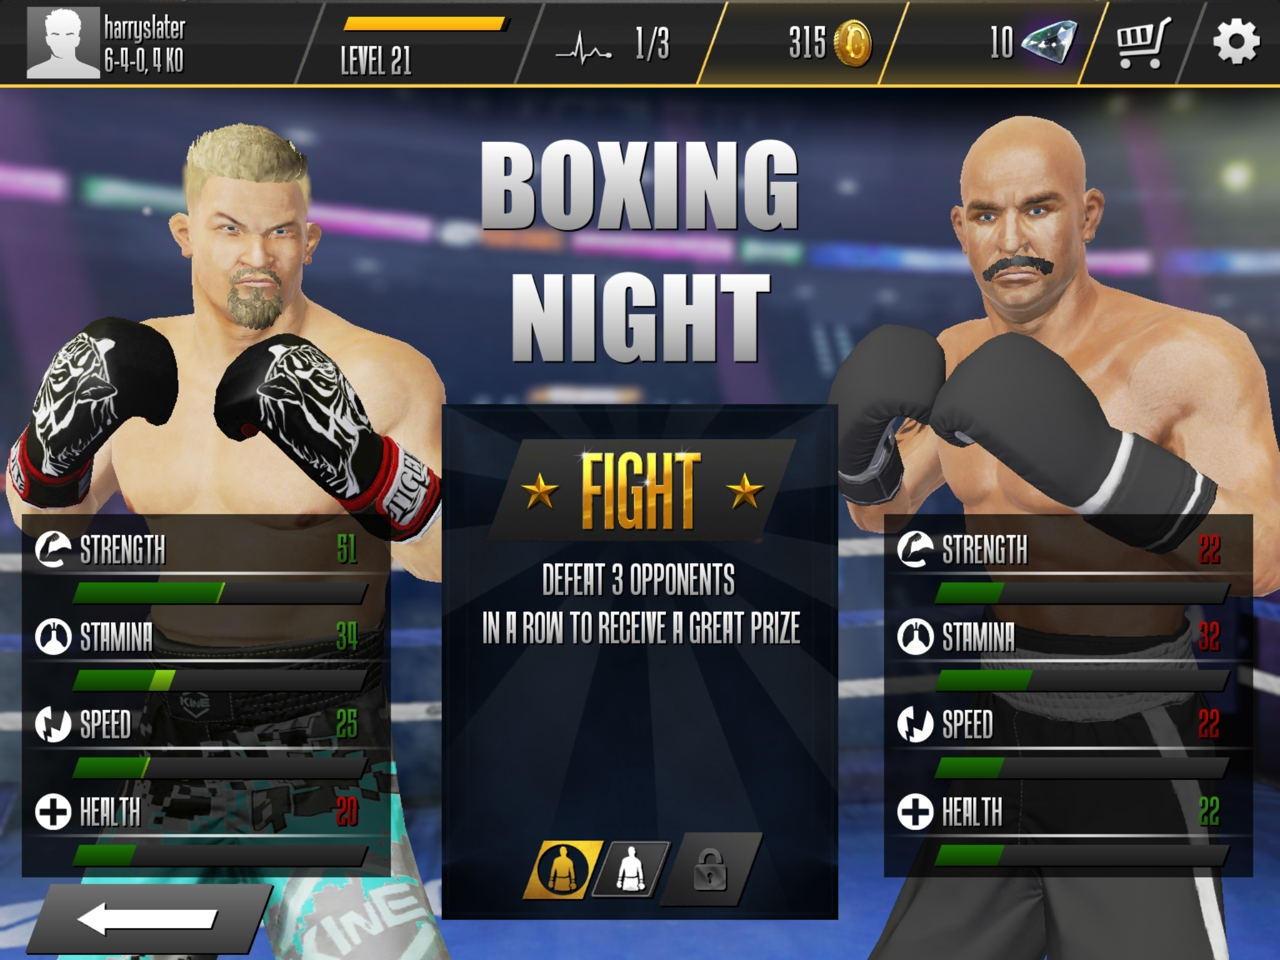 Real Boxing 2: Creed - A smart and tactical boxing sim